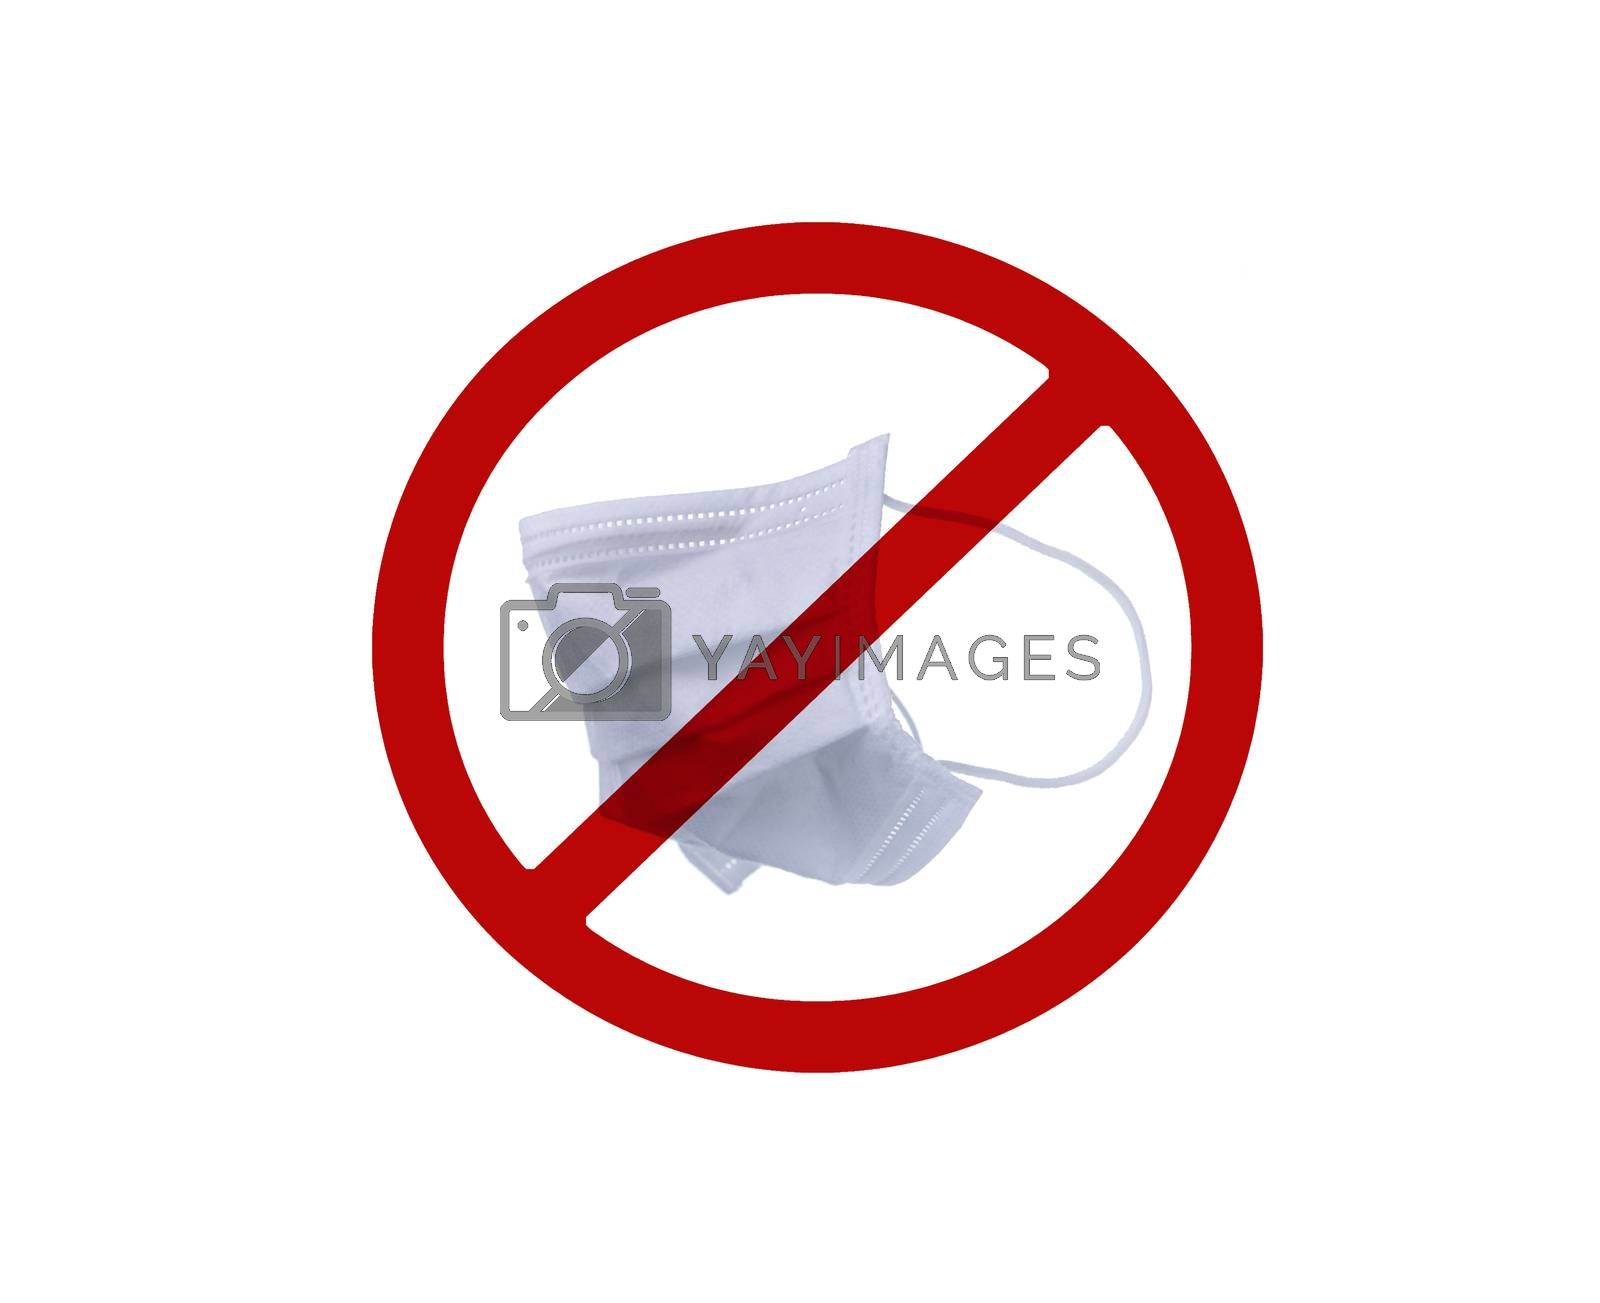 Used white surgical face mask in red forbidden symbol on white background. No discard used medical face mask in this area. Medical waste management with hygienic rule in hospital and community.